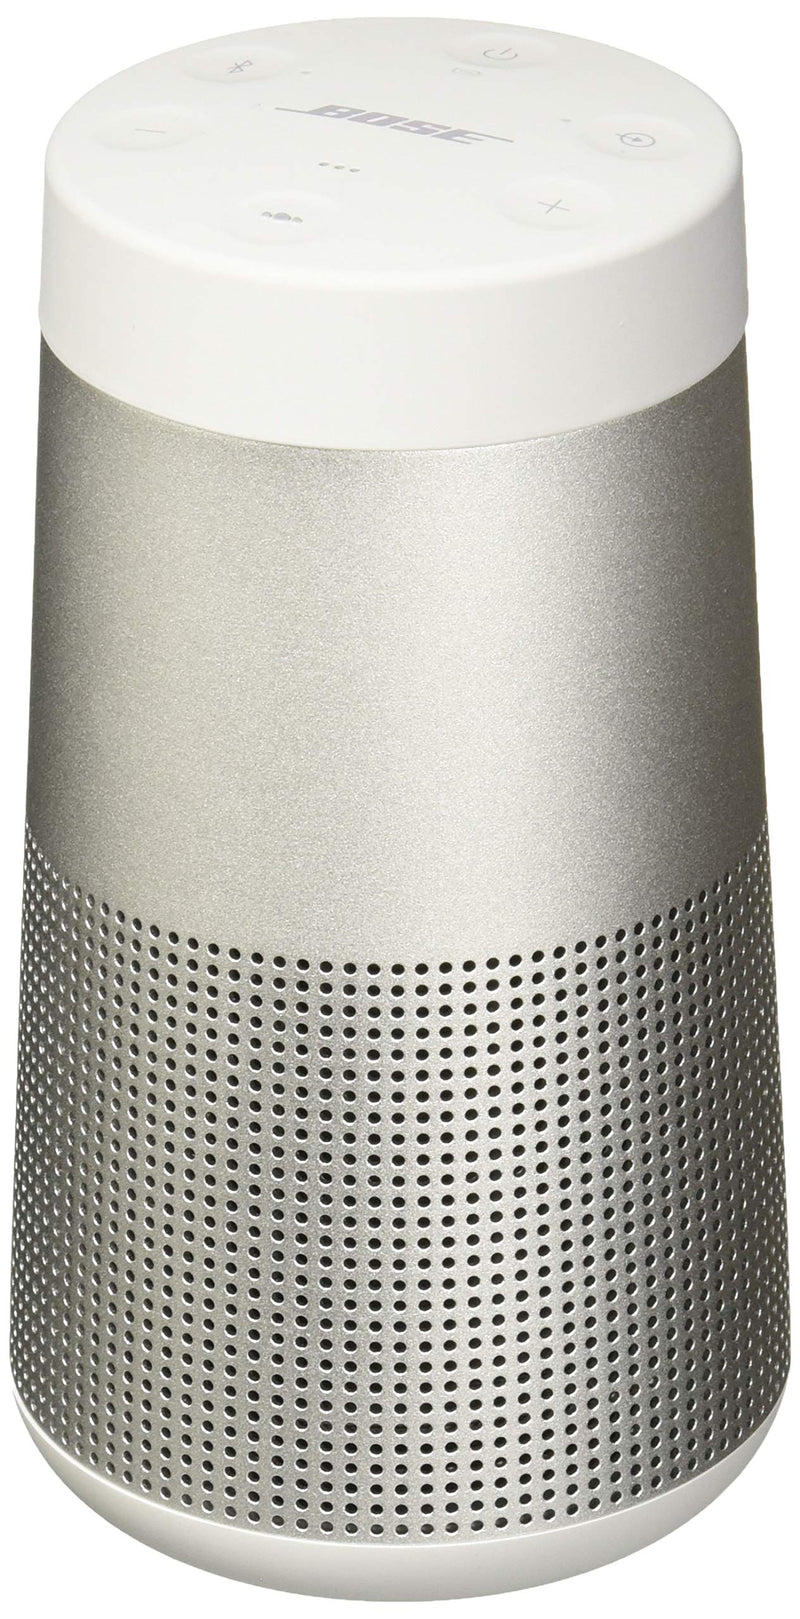 Bose SoundLink Revolve, Portable Bluetooth Speaker (with 360 Wireless Surround Sound), Lux Gray - Epivend